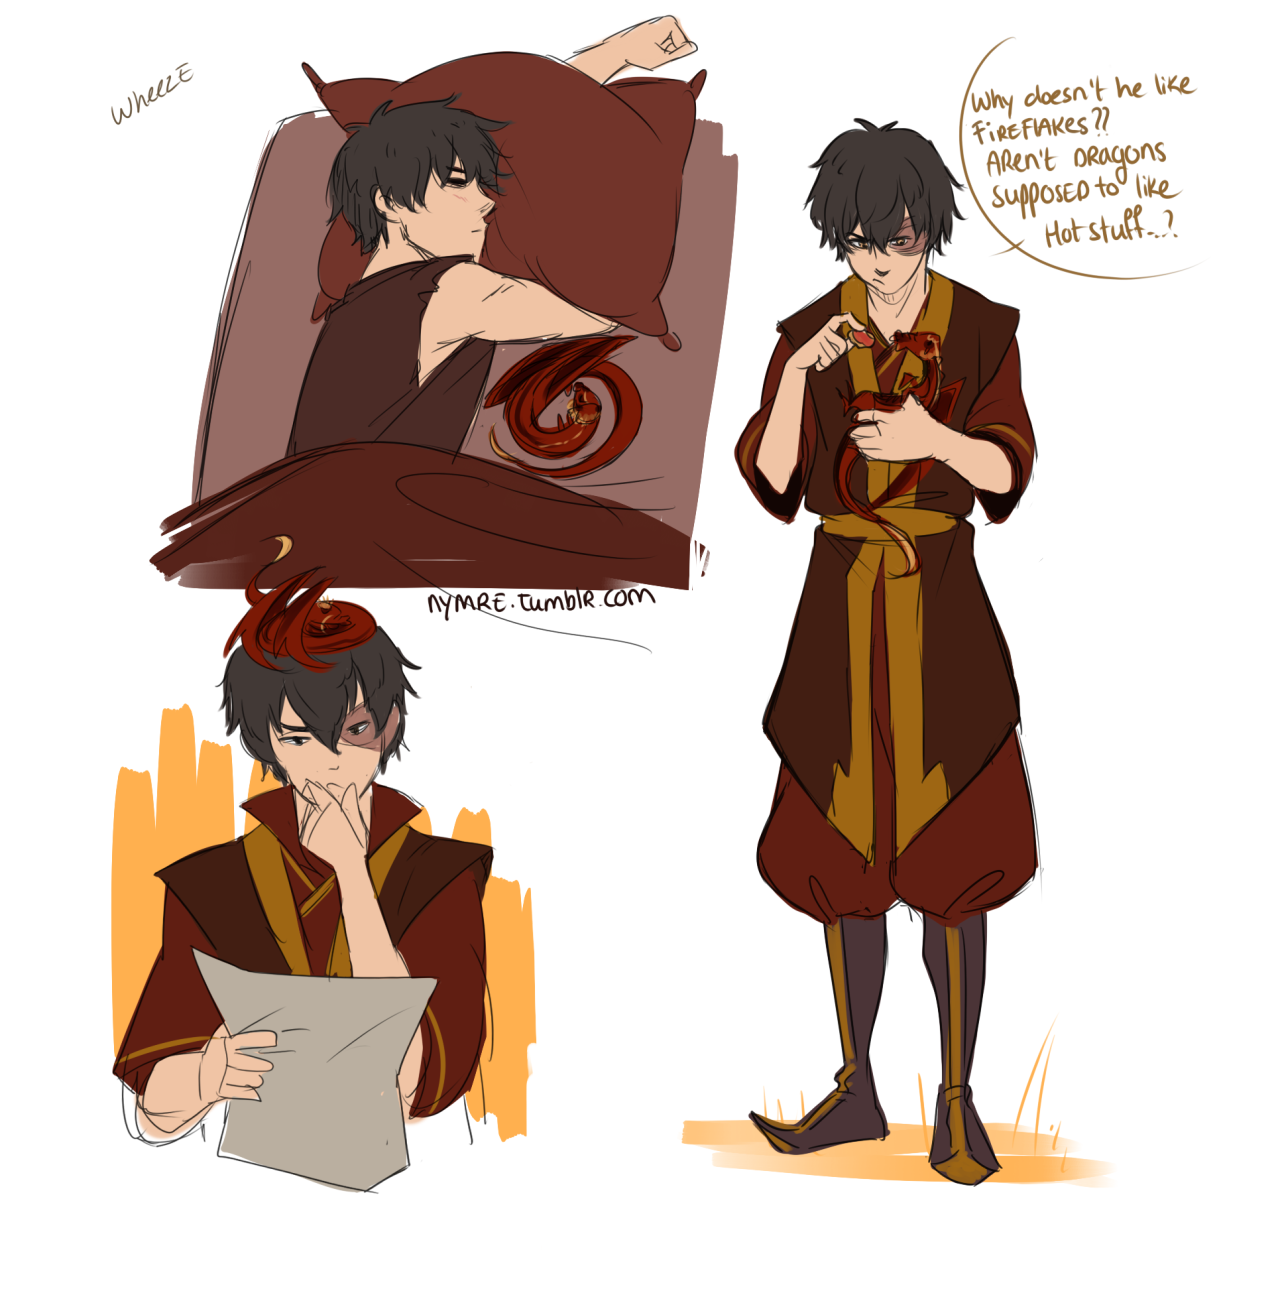 The Last Airbender All Avatars: Zuko The Dragon-Mom